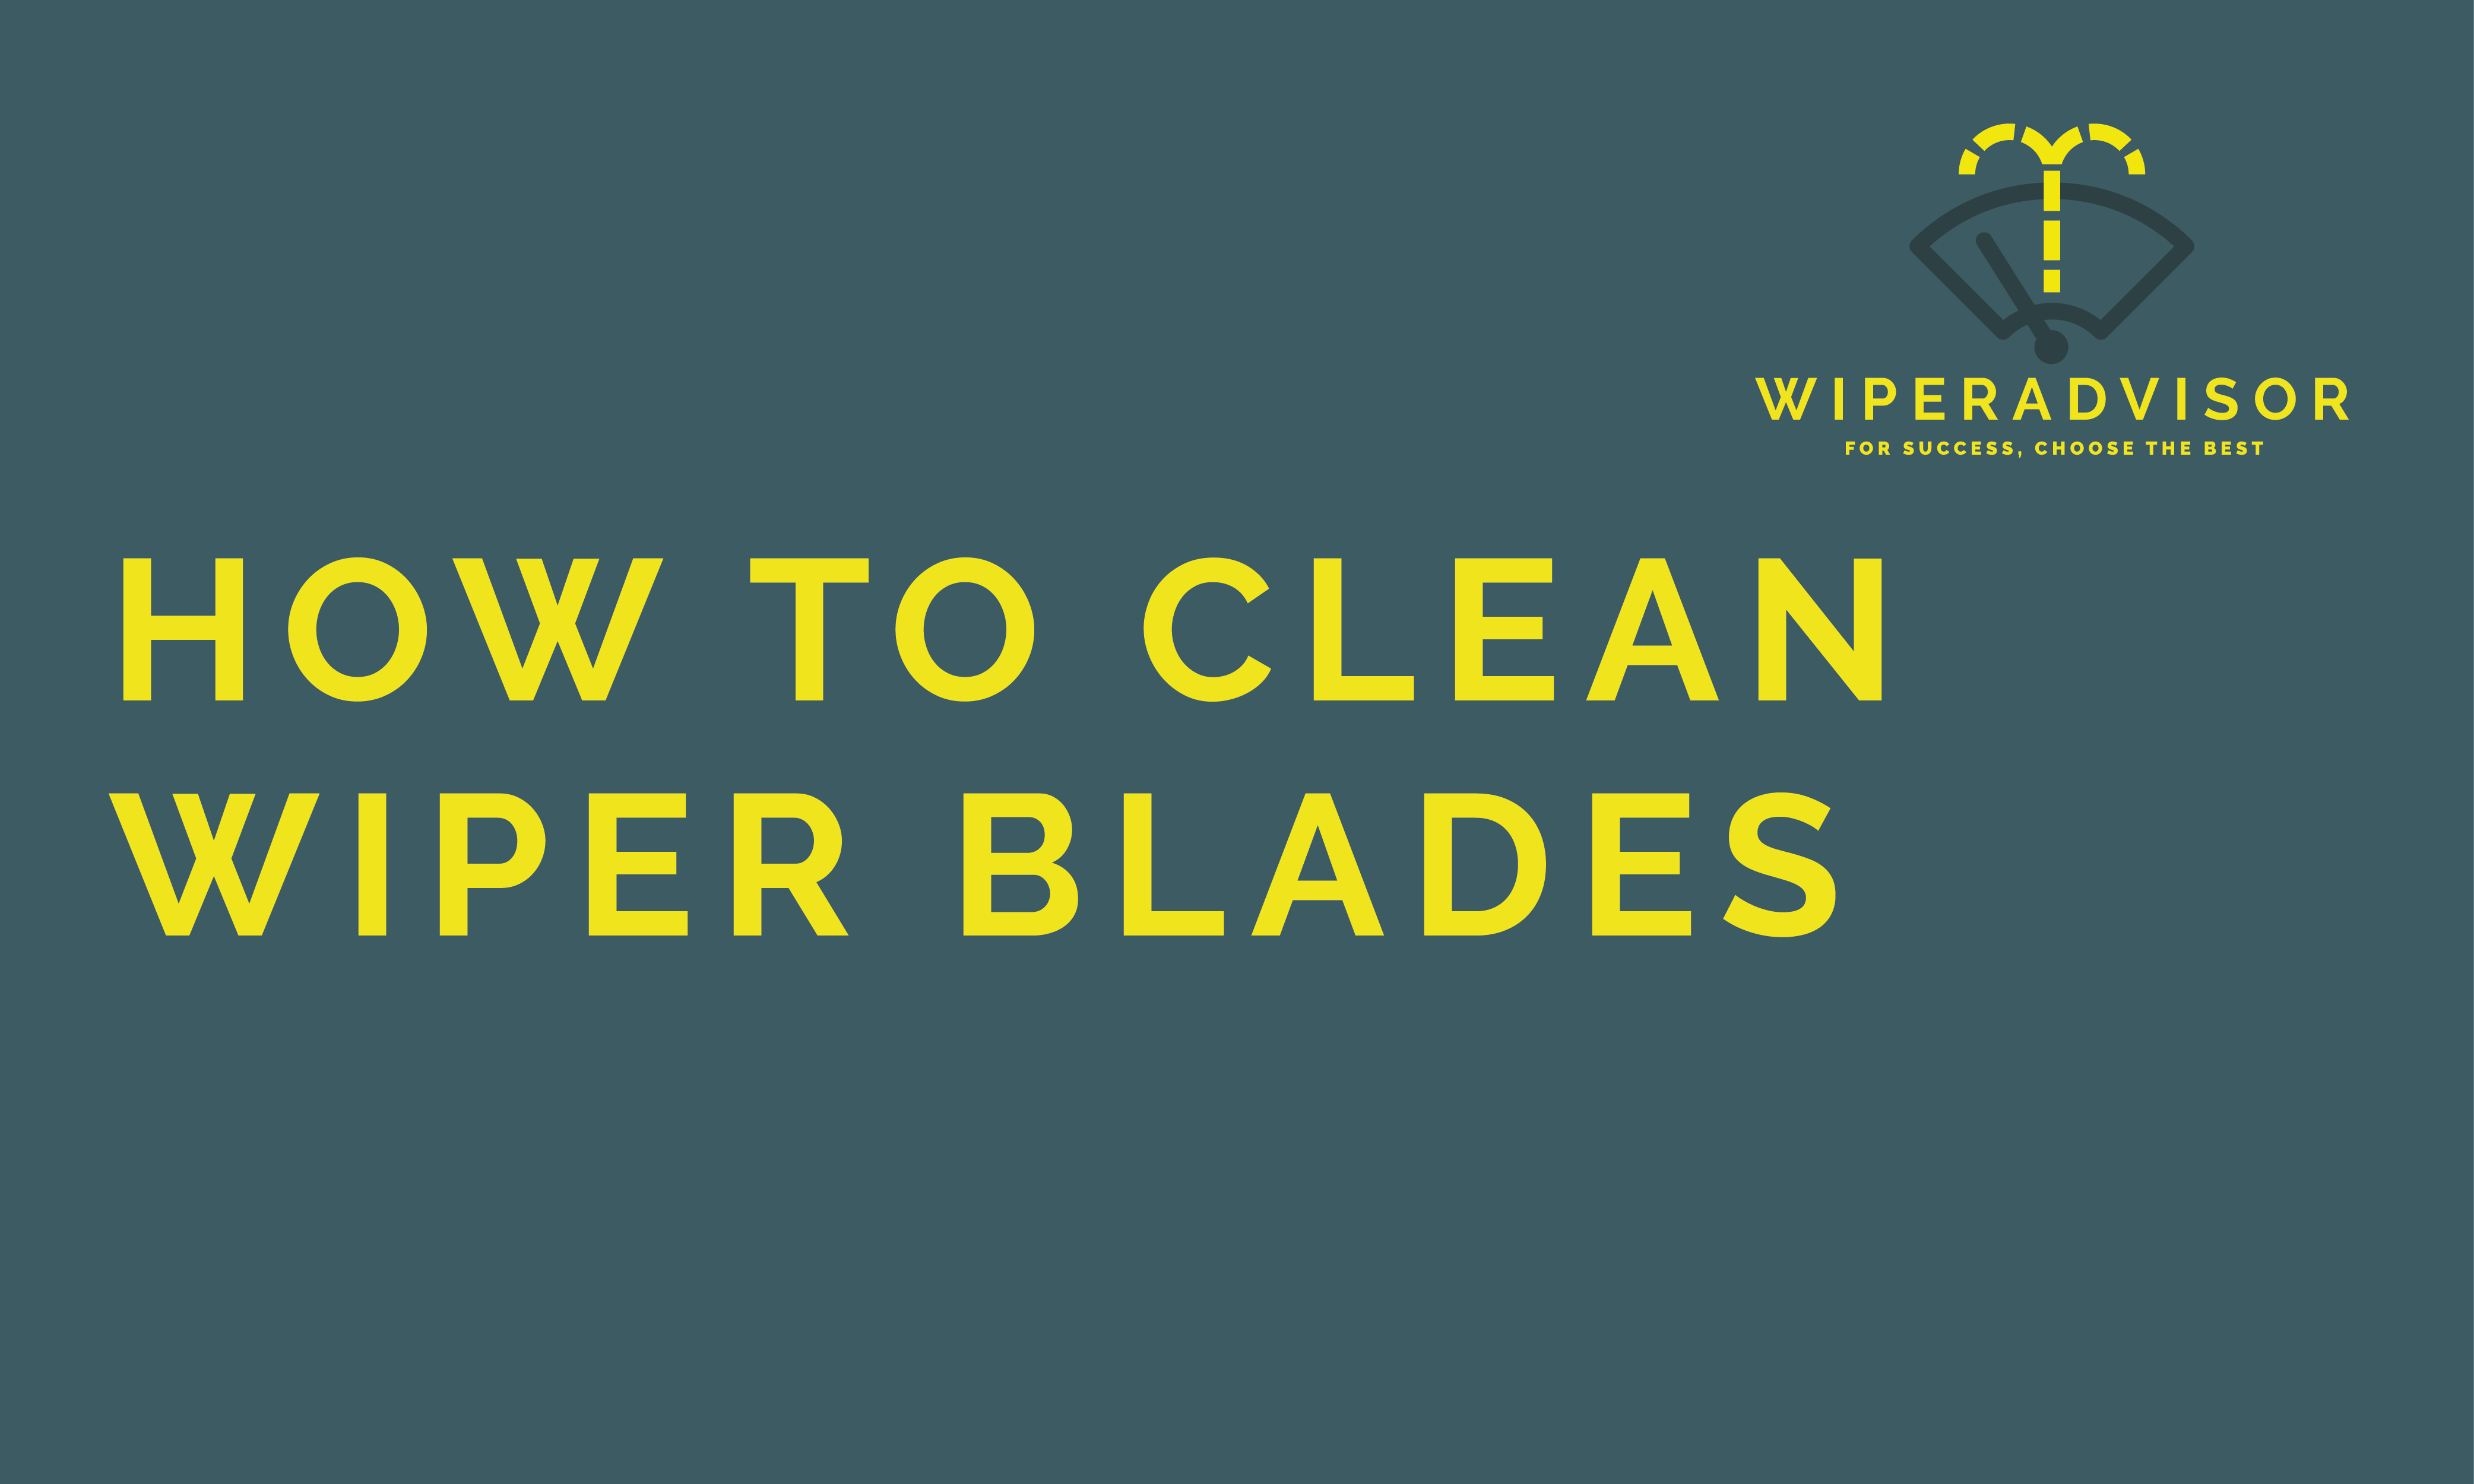 How to clean wiper blades